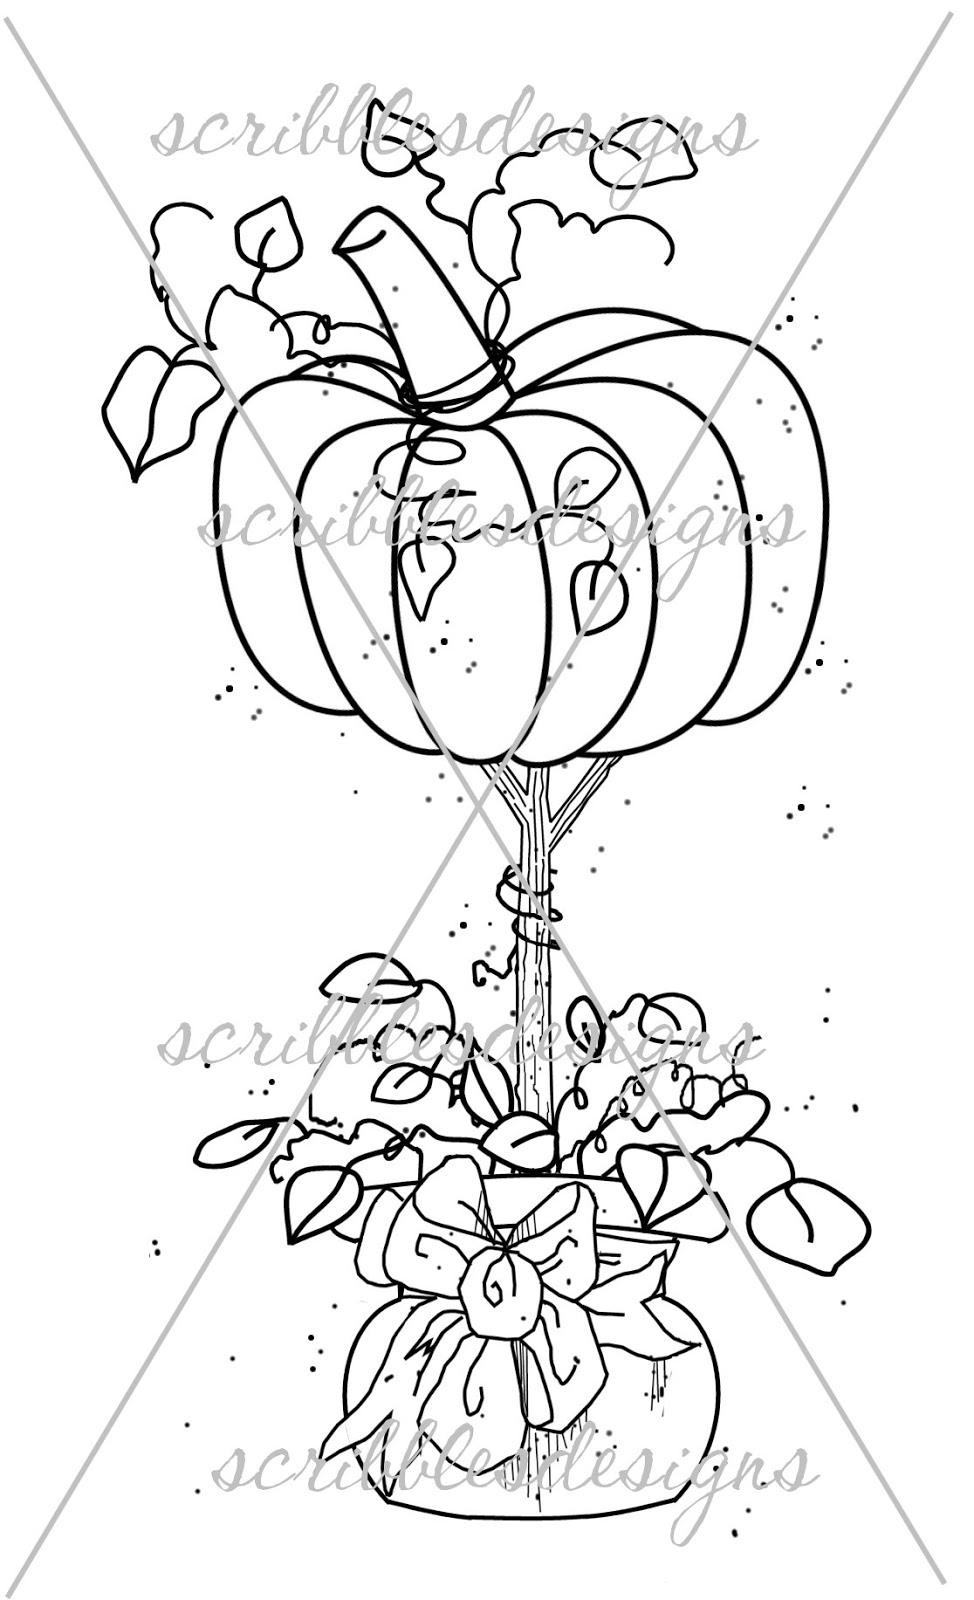 http://buyscribblesdesigns.blogspot.com/2015/02/647-pumpkin-fall-topiary-300.html